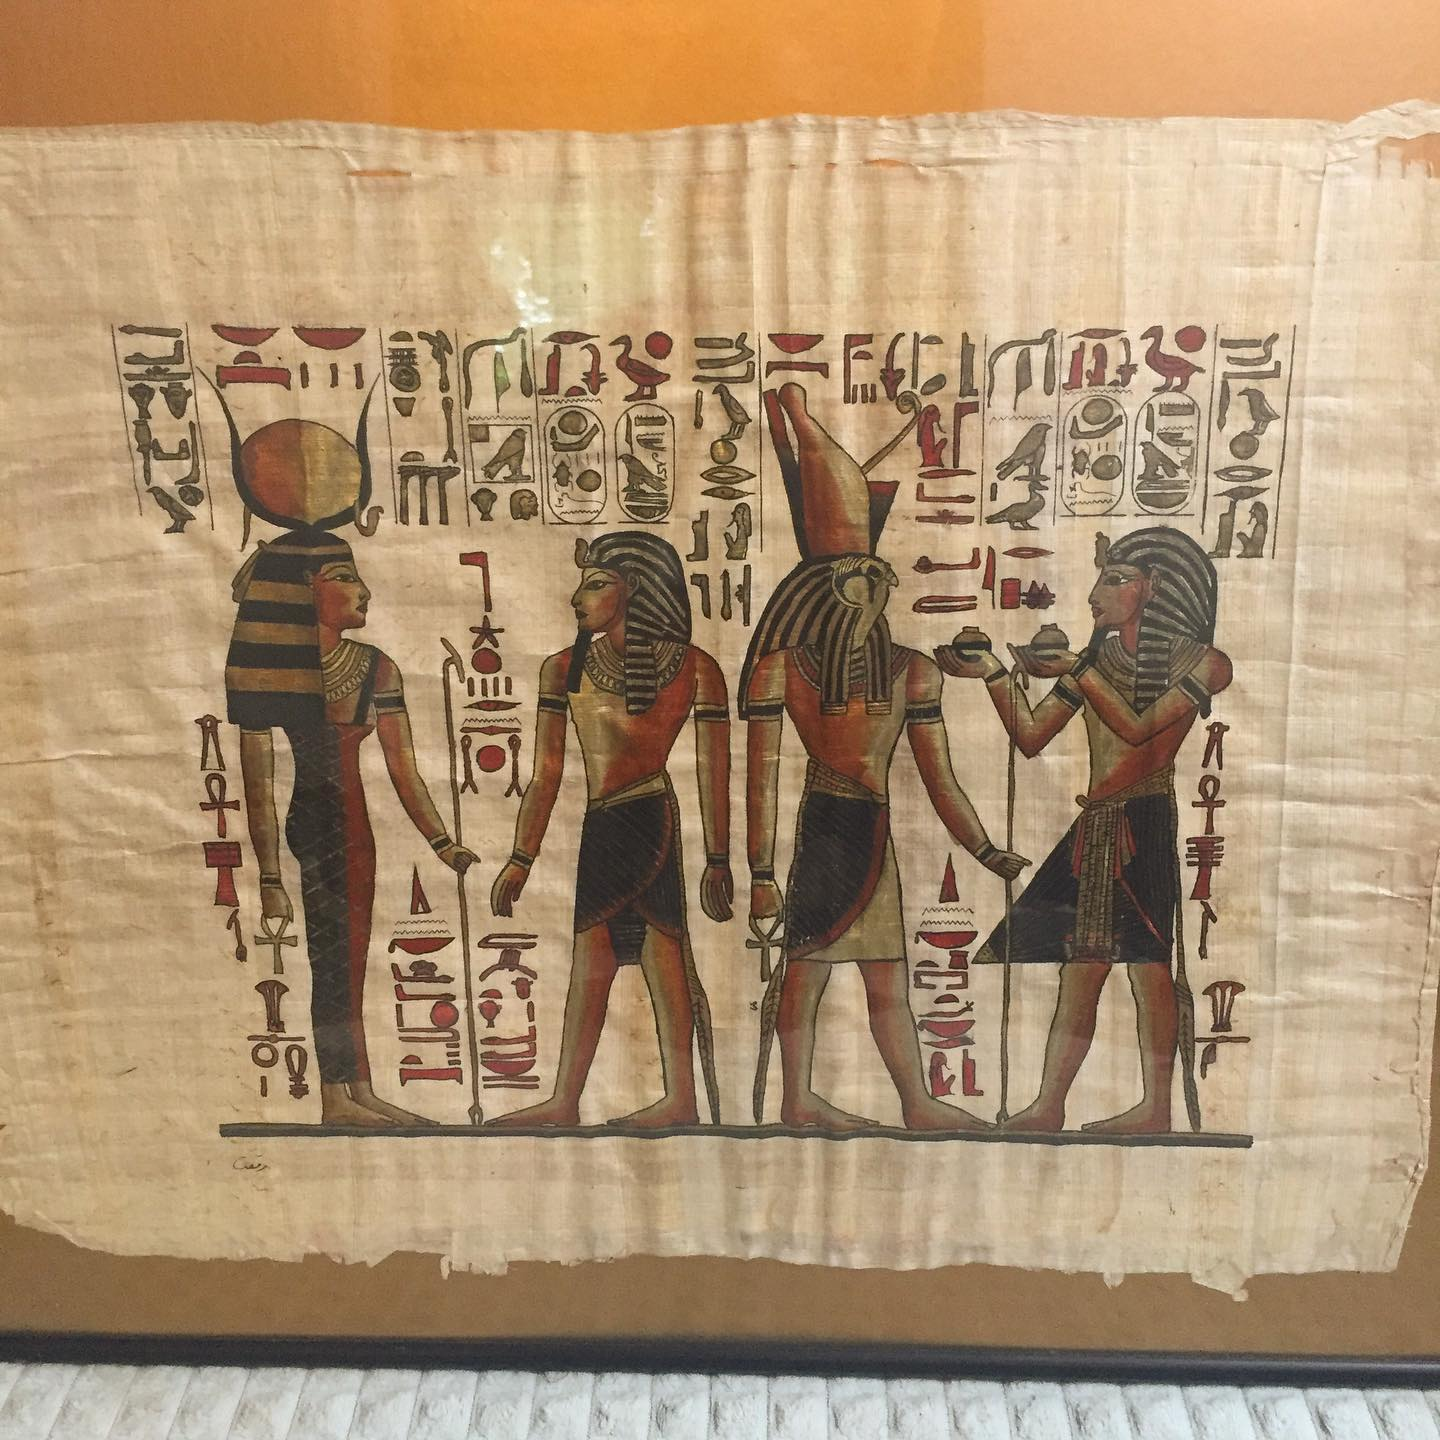 I'm surrounded by all things Egypt here at my dad's house, and it's just what my soul needed. #egyptianpapyrus #ichoosebeauty Day 2752